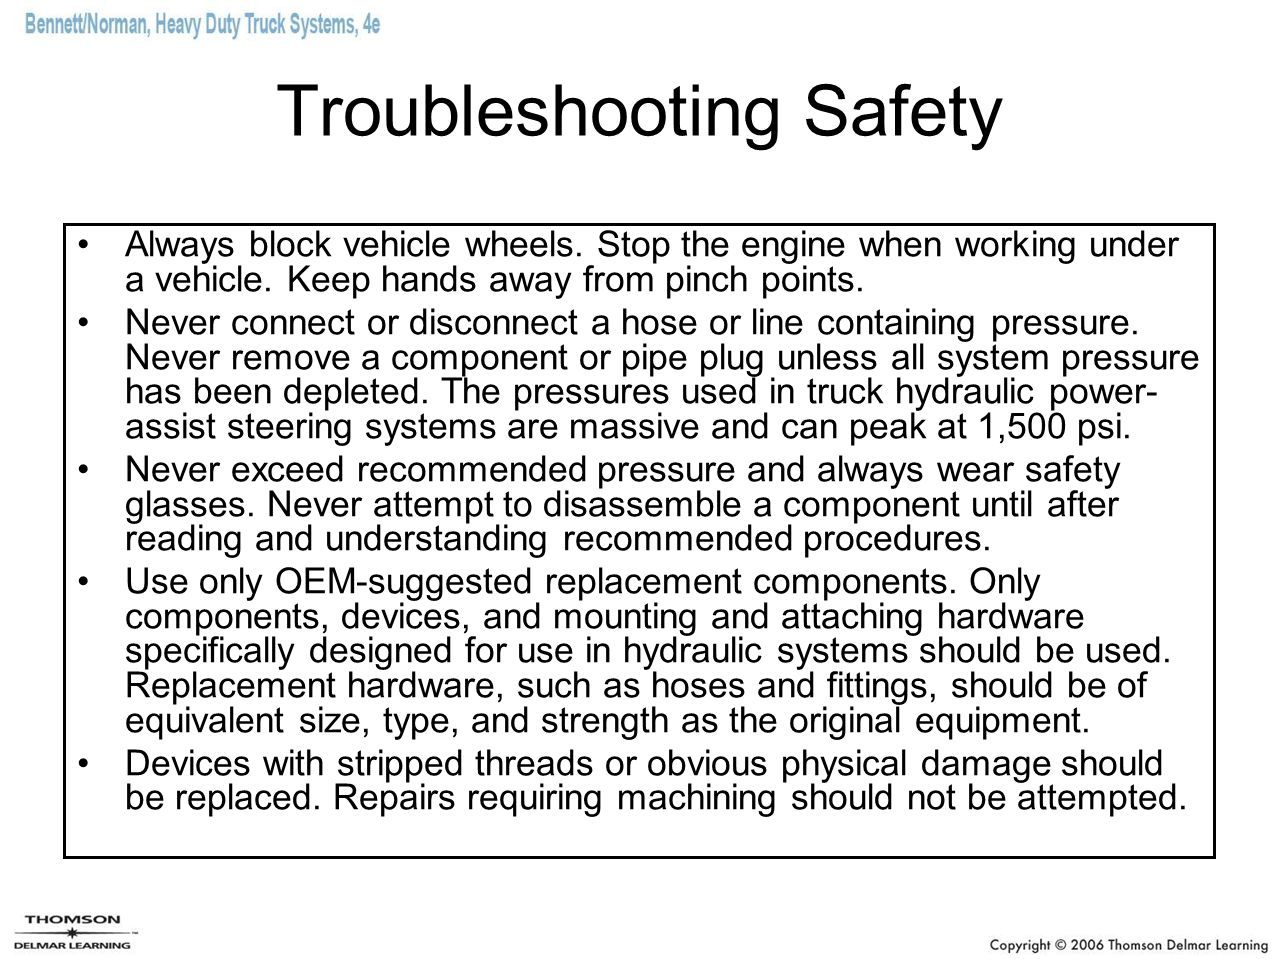 Troubleshooting Safety